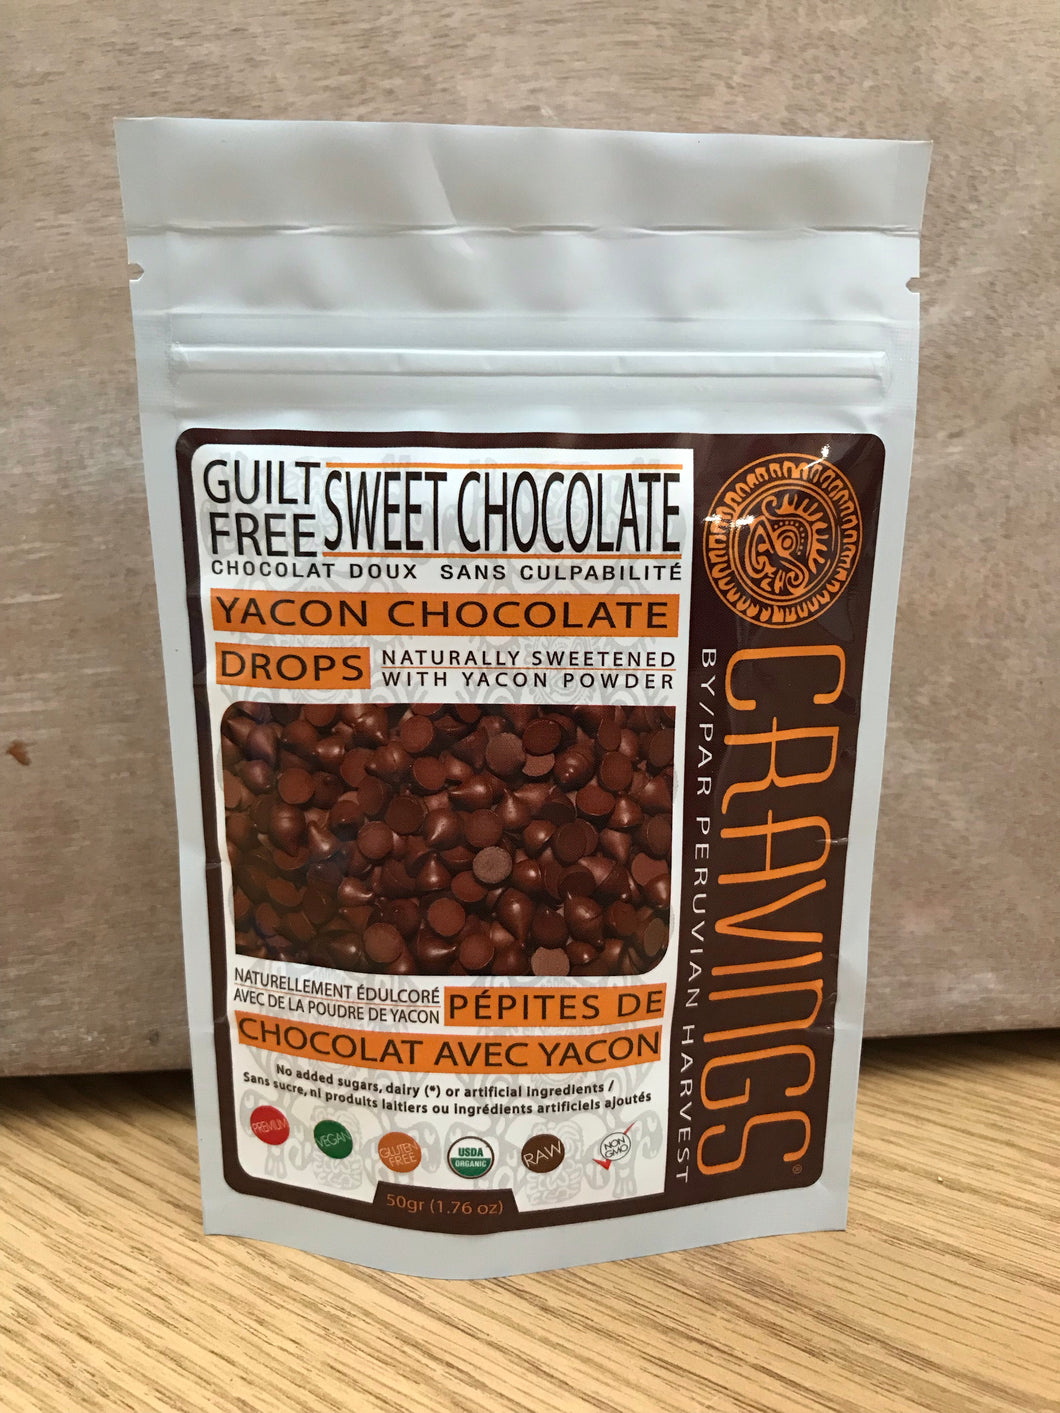 Peruvian Harvest Cravings Yacon Chocolate Drops (50g)